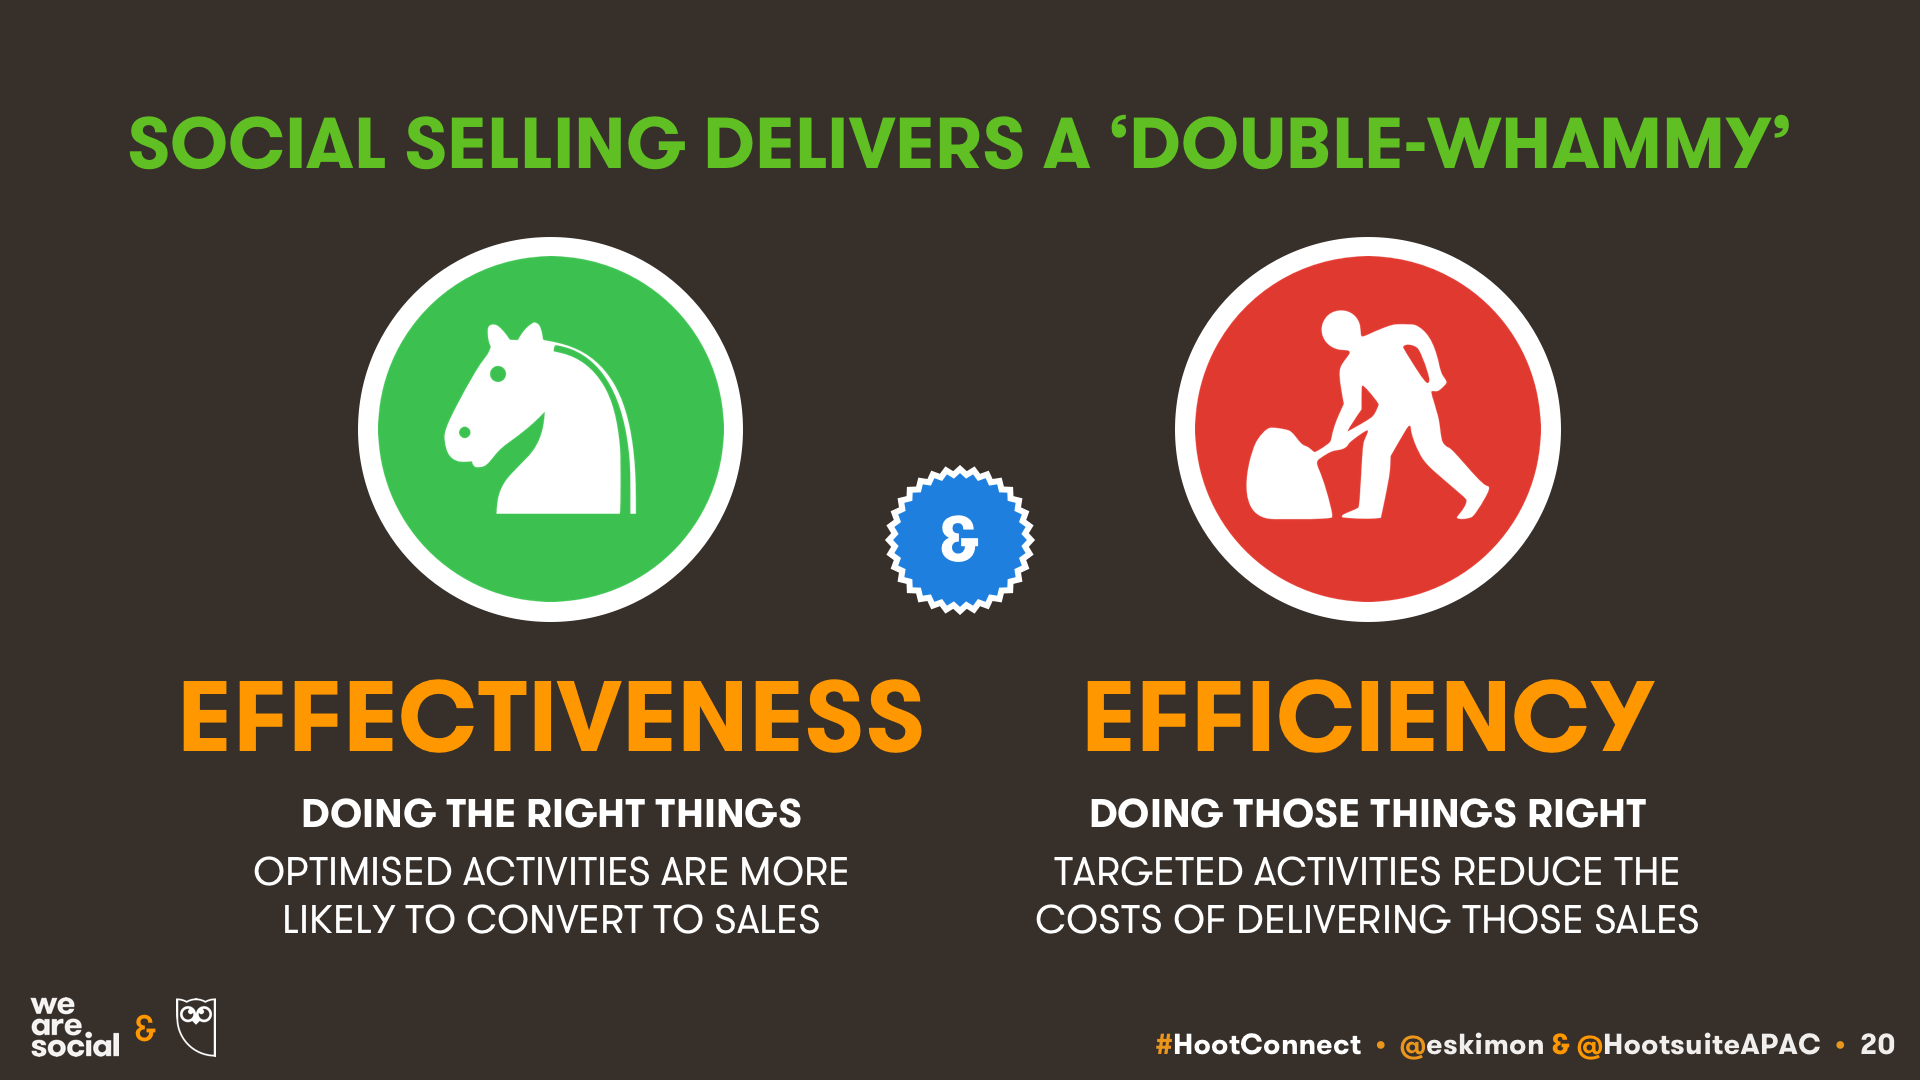 KEPIOS: SOCIAL SELLING DELIVERS EFFECTIVENESS AND EFFICIENCY